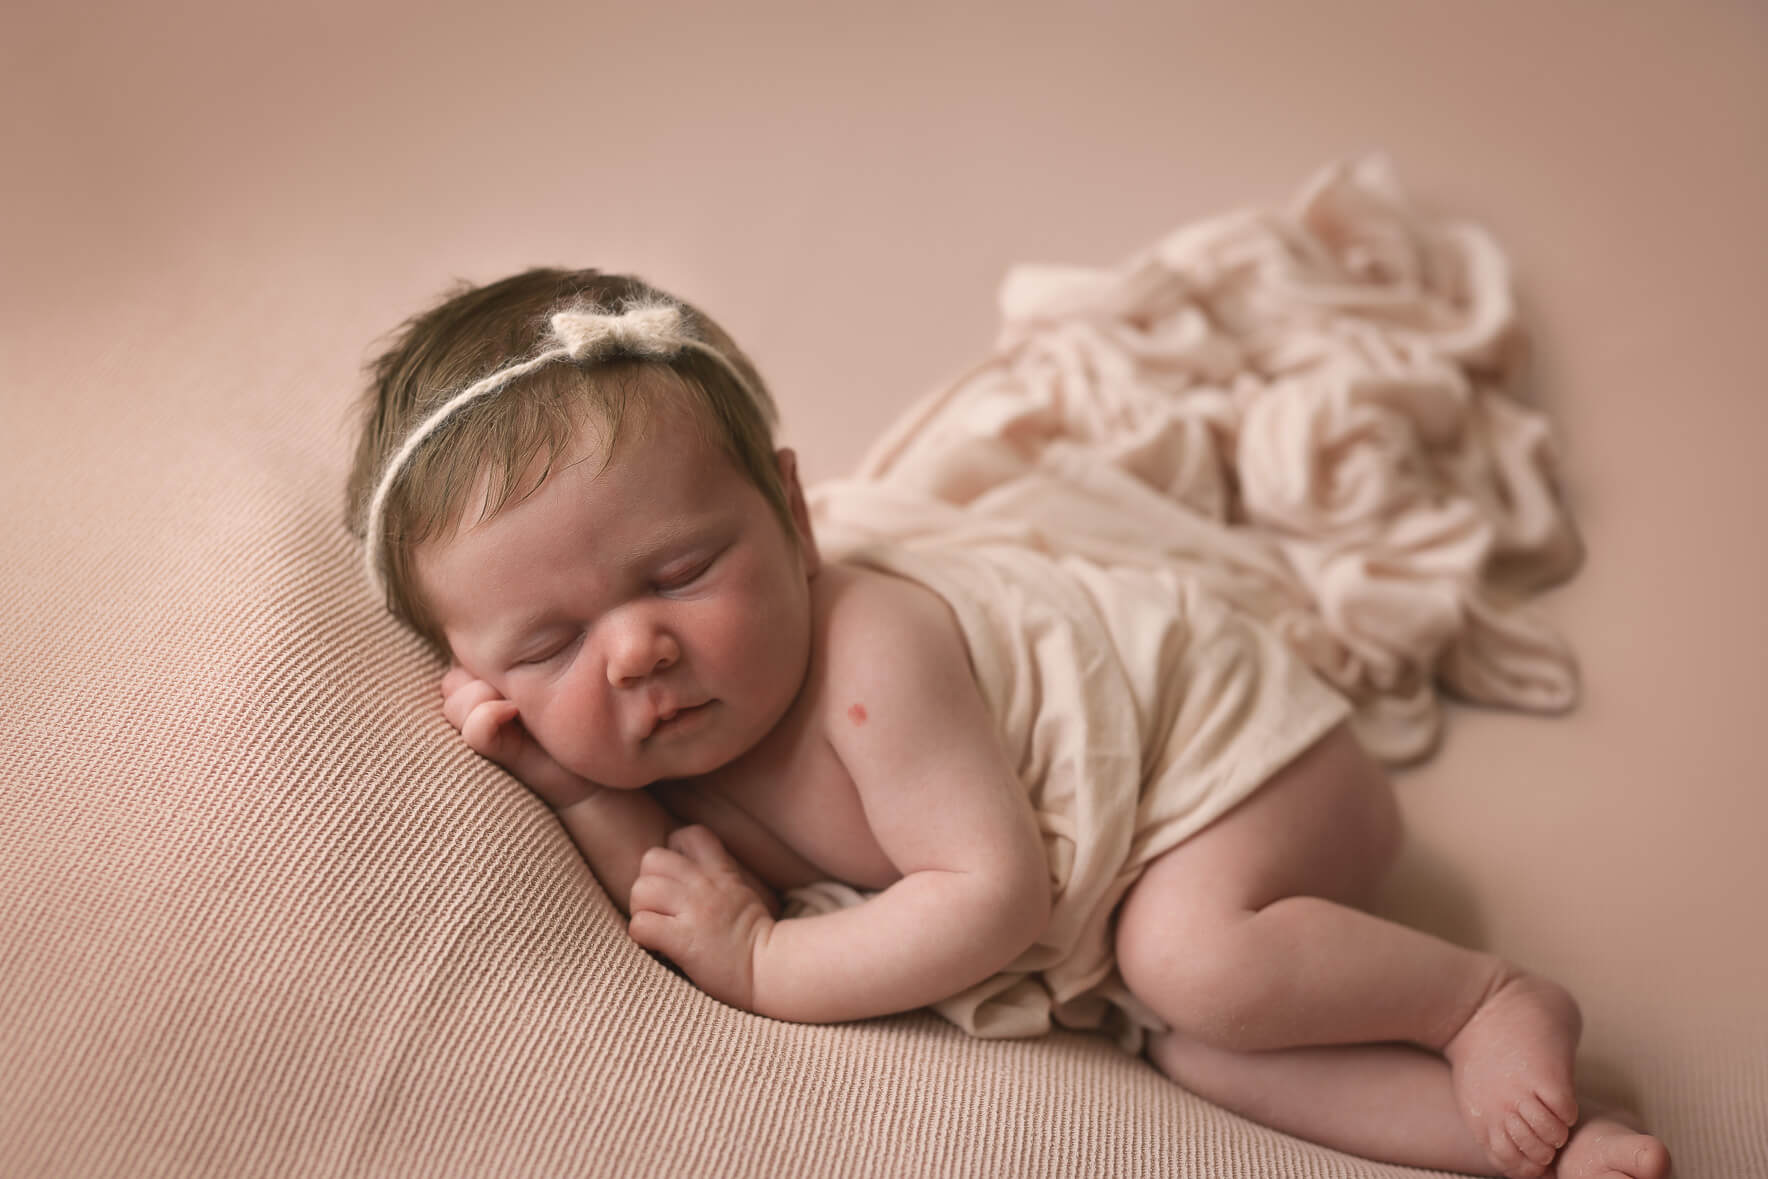 Baby lying on a blanket during her posed newborn photography shoot